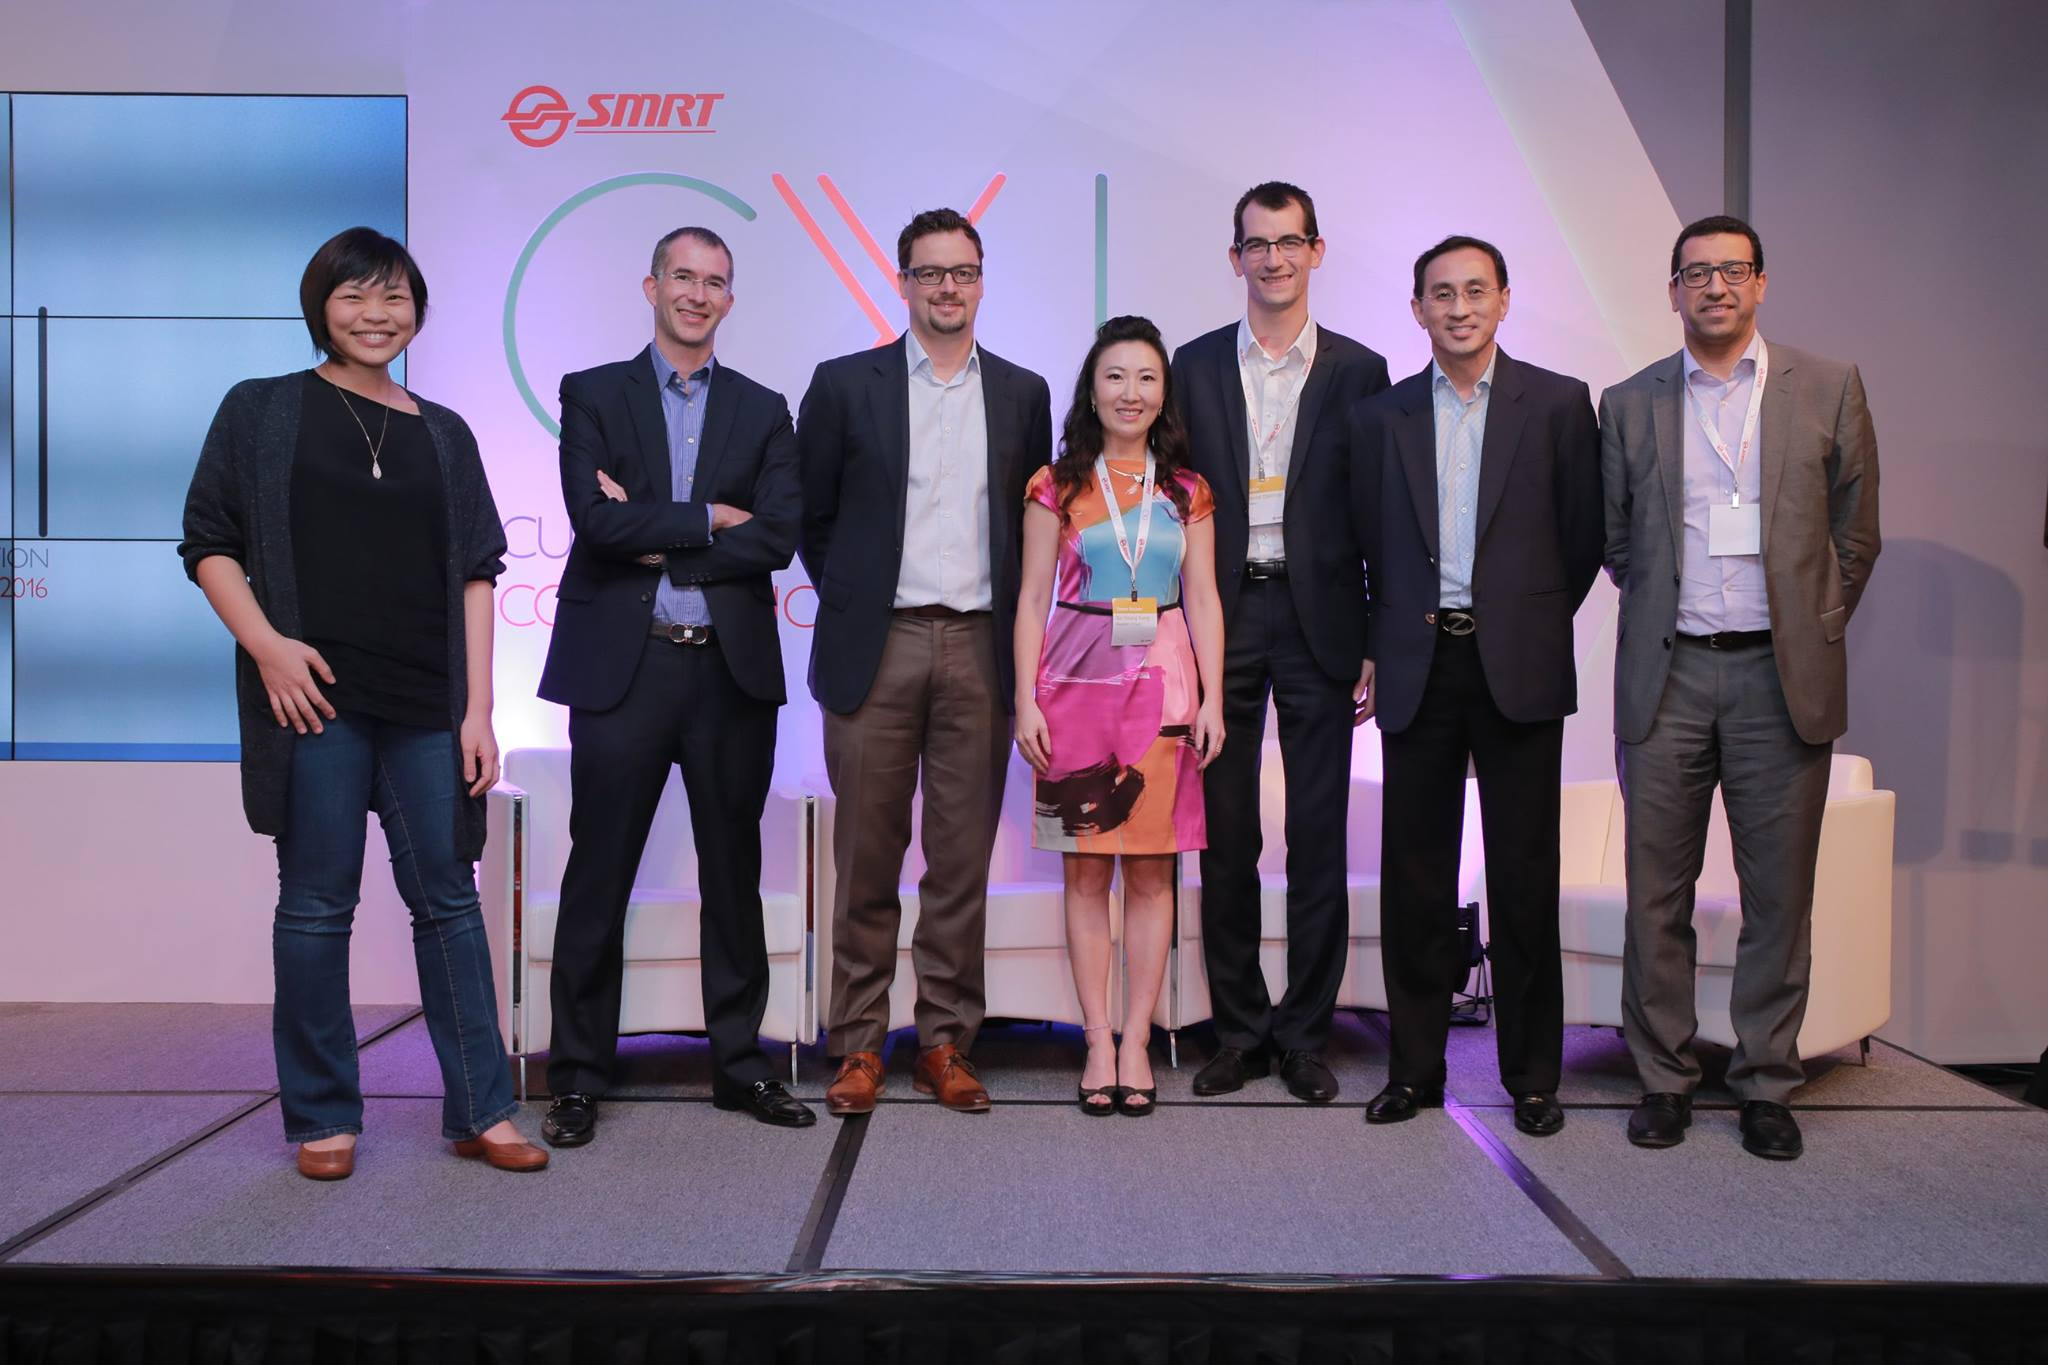 Speakers, experts, thought leaders with SMRT CEO Desmond Kuek